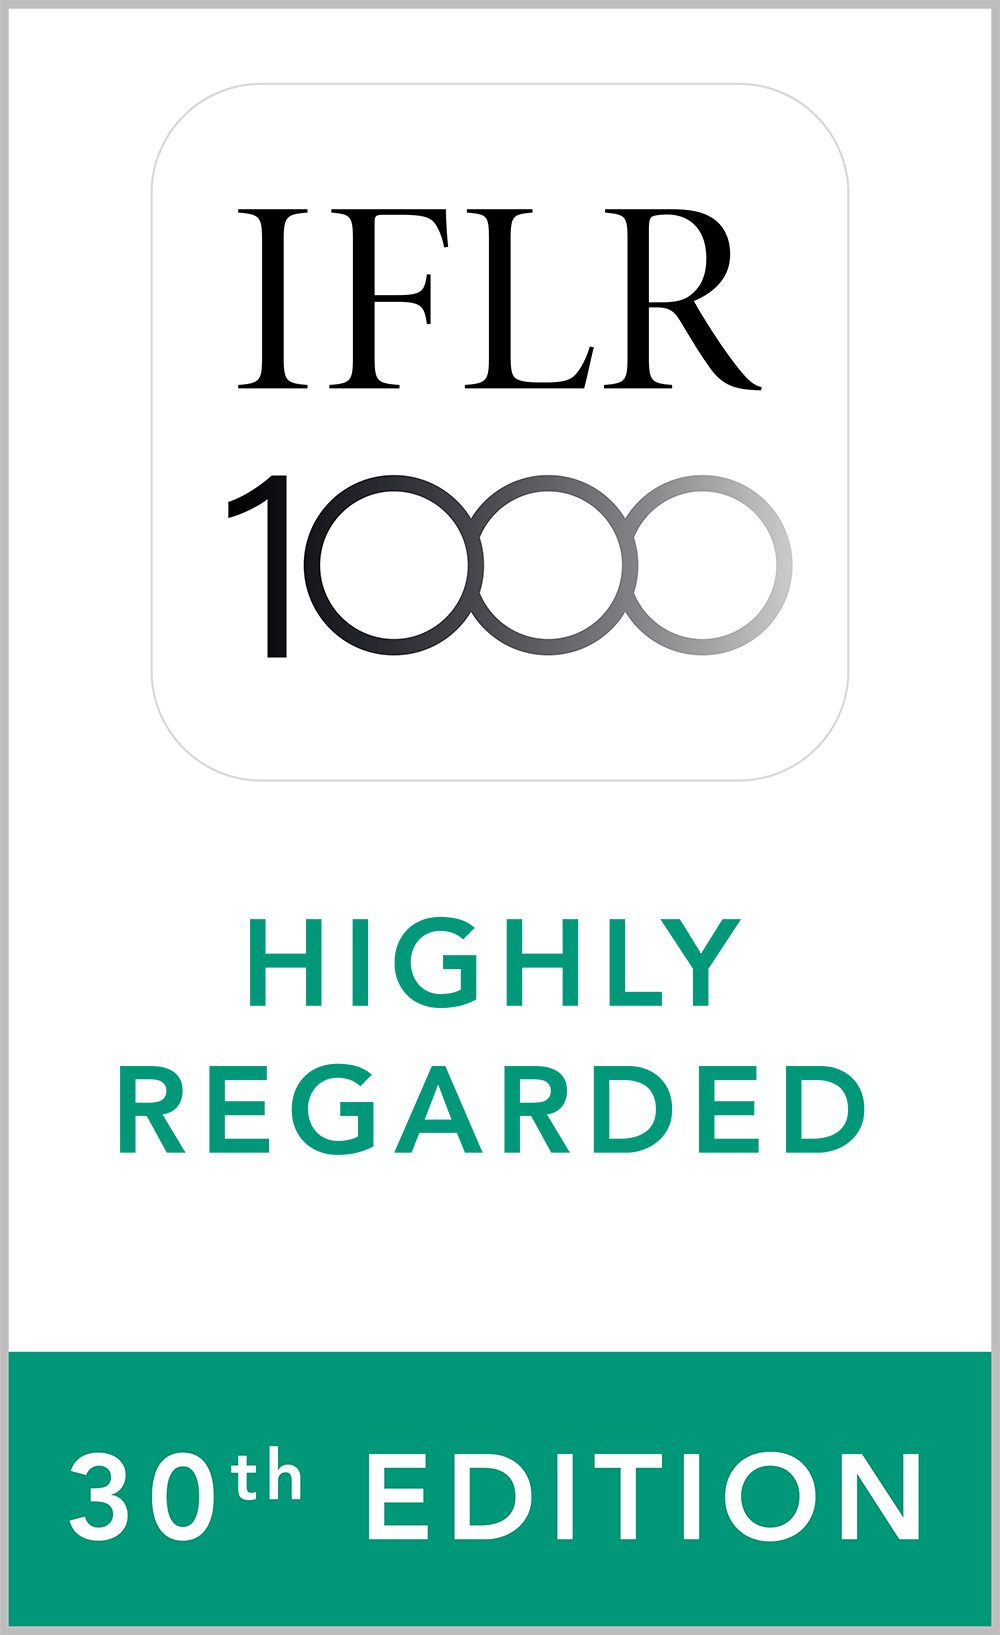 Highly Regarded Leading Lawyer in Capital markets: Equity, M&A, Private equity and Restructuring and insolvency practices by IFLR1000, 2021